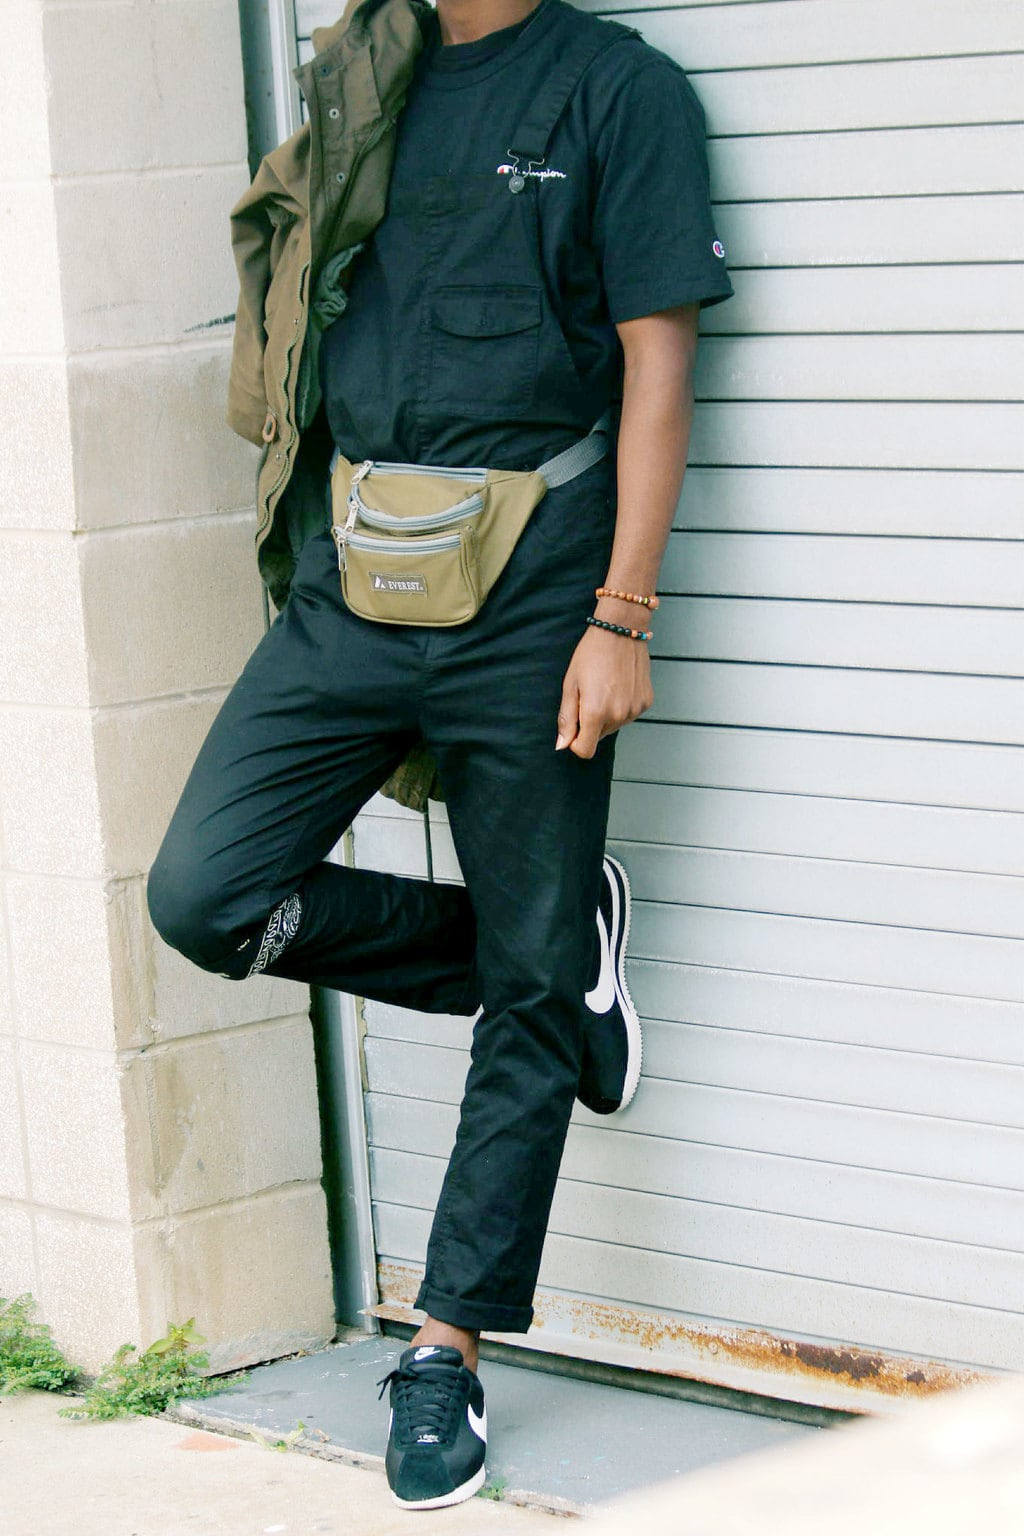 Men's fashion at University of South Florida: Student Karon sports a light brown fanny pack with a black Champion tee and black overalls. He wears a bandana around his leg.